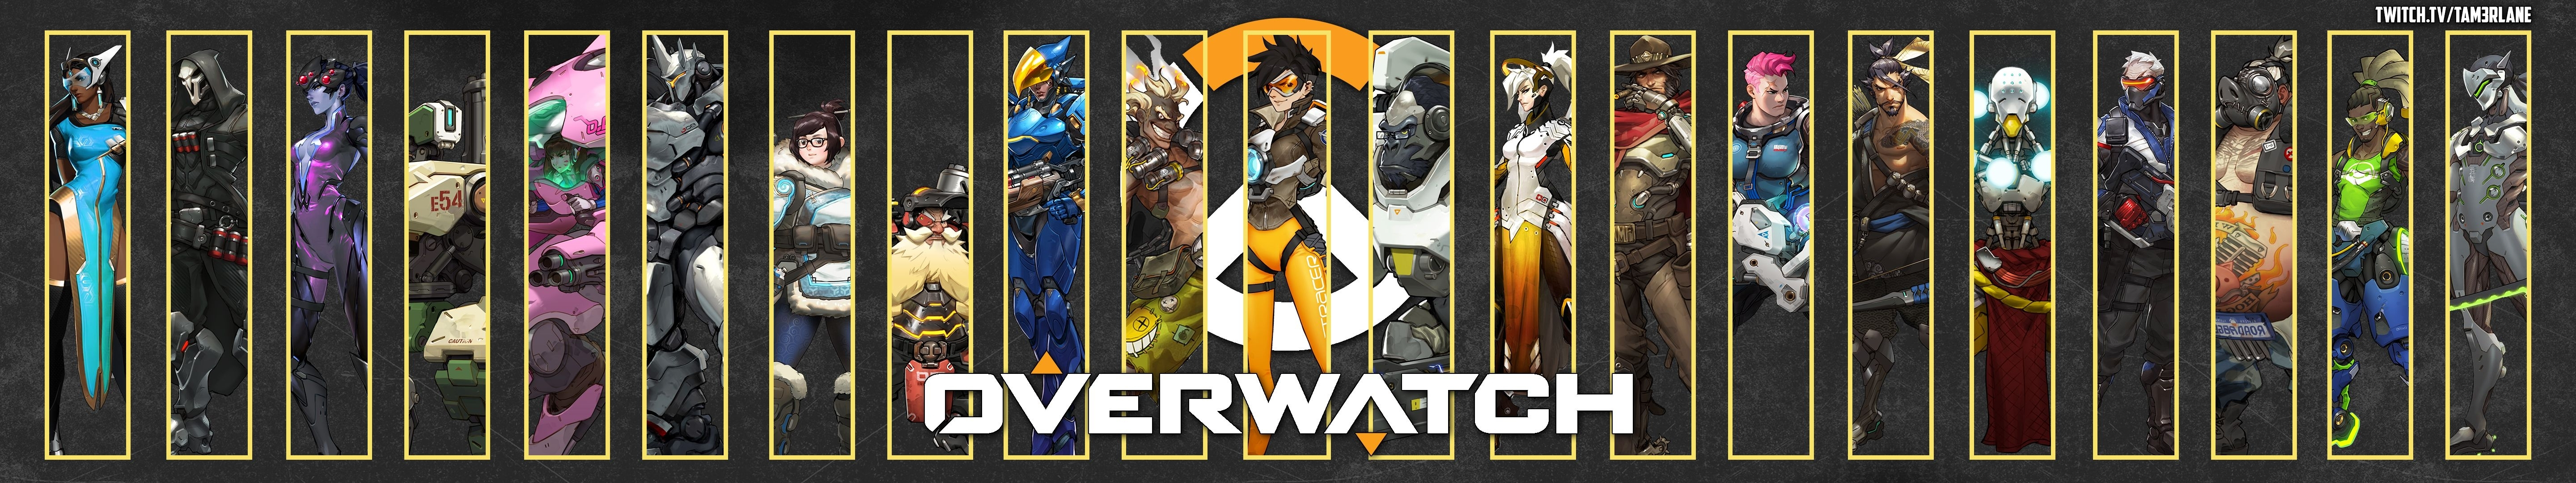 overwatch triple monitor wallpaper - 5760x1080 - enjoy